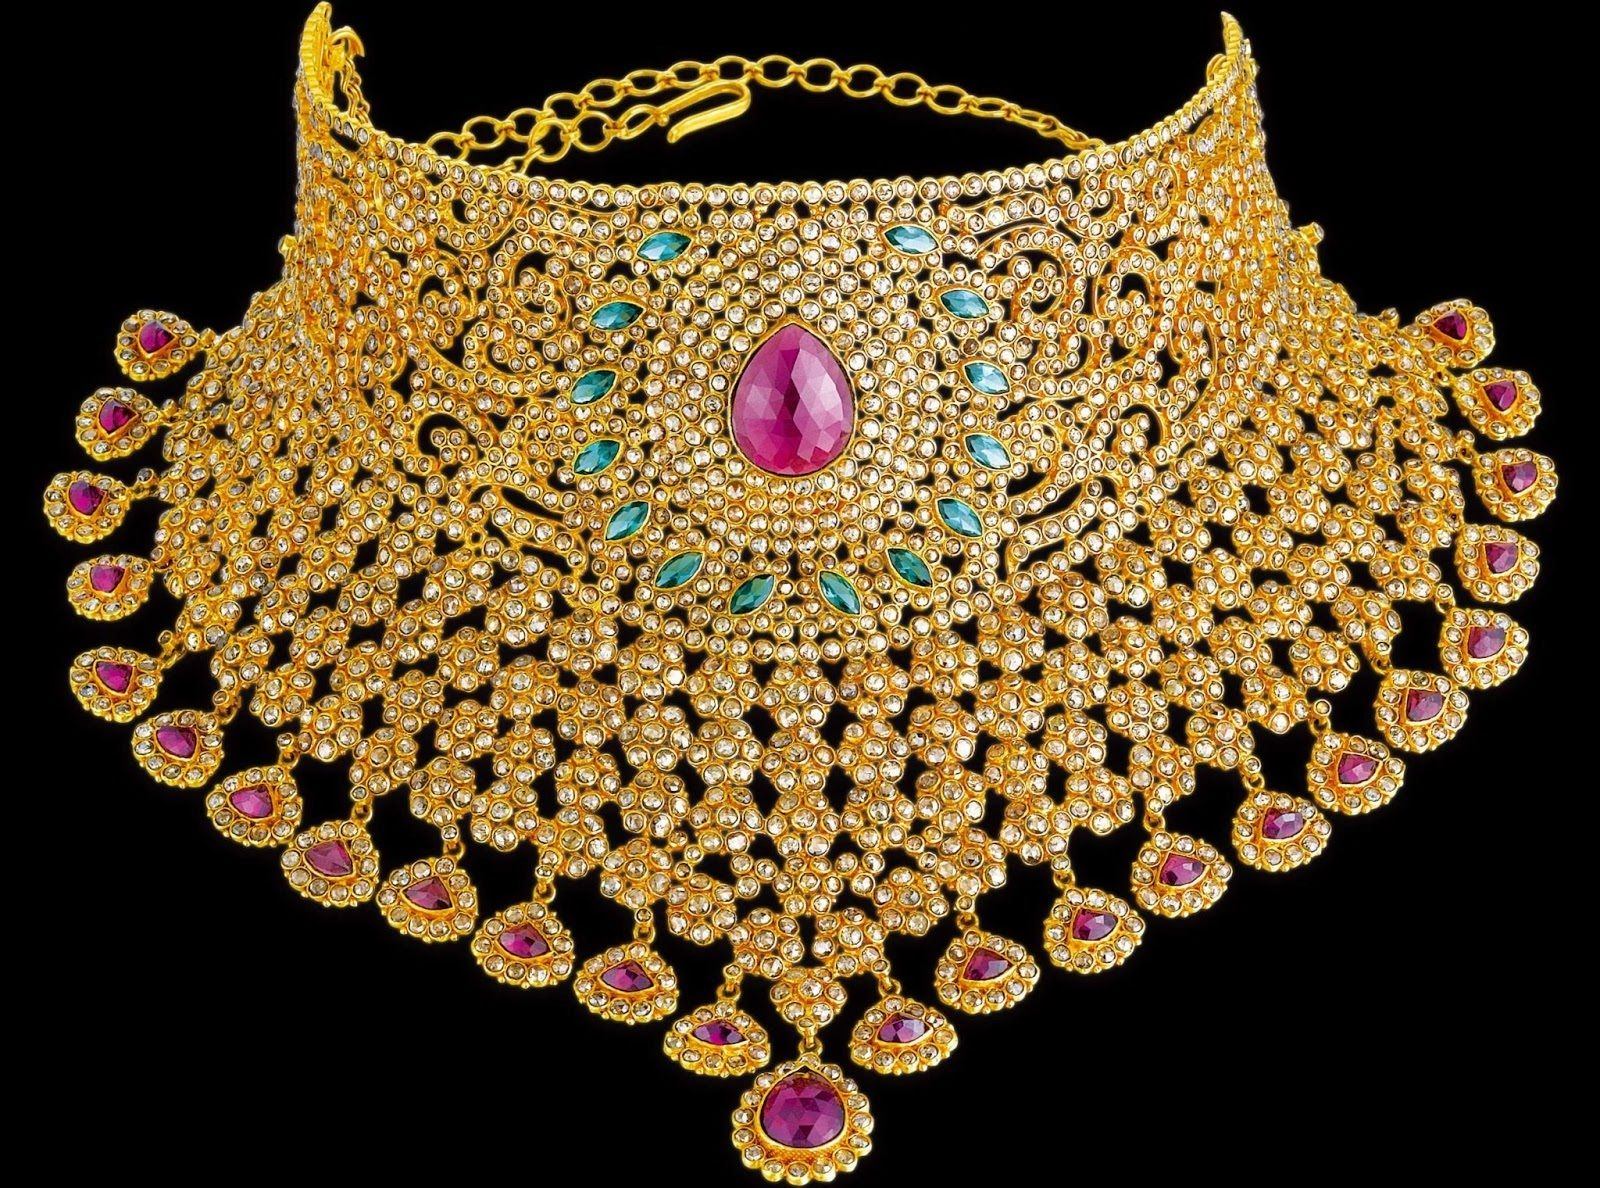 Pai jewellers gold necklace designs latest indian jewellery designs - Latest Indian Gold And Diamond Jewellery Designs Heavy Bridal Uncut Diamond Choker Necklace